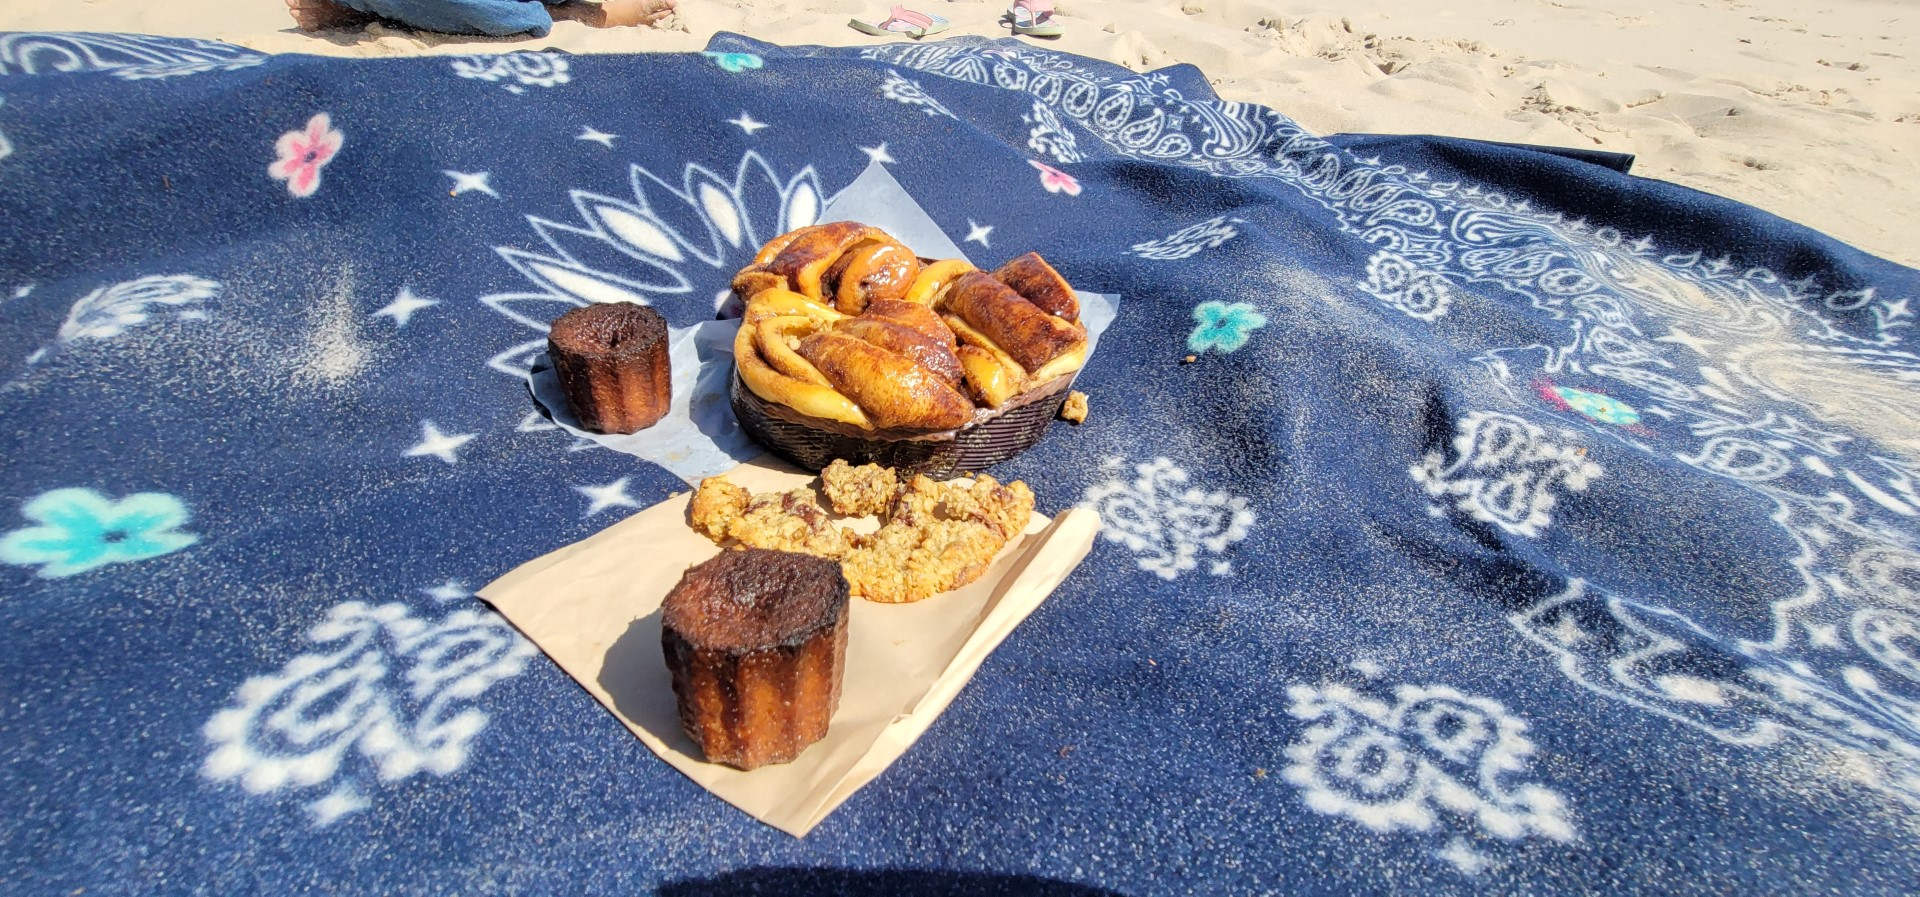 canelles and pastries on a blue sandy blanket